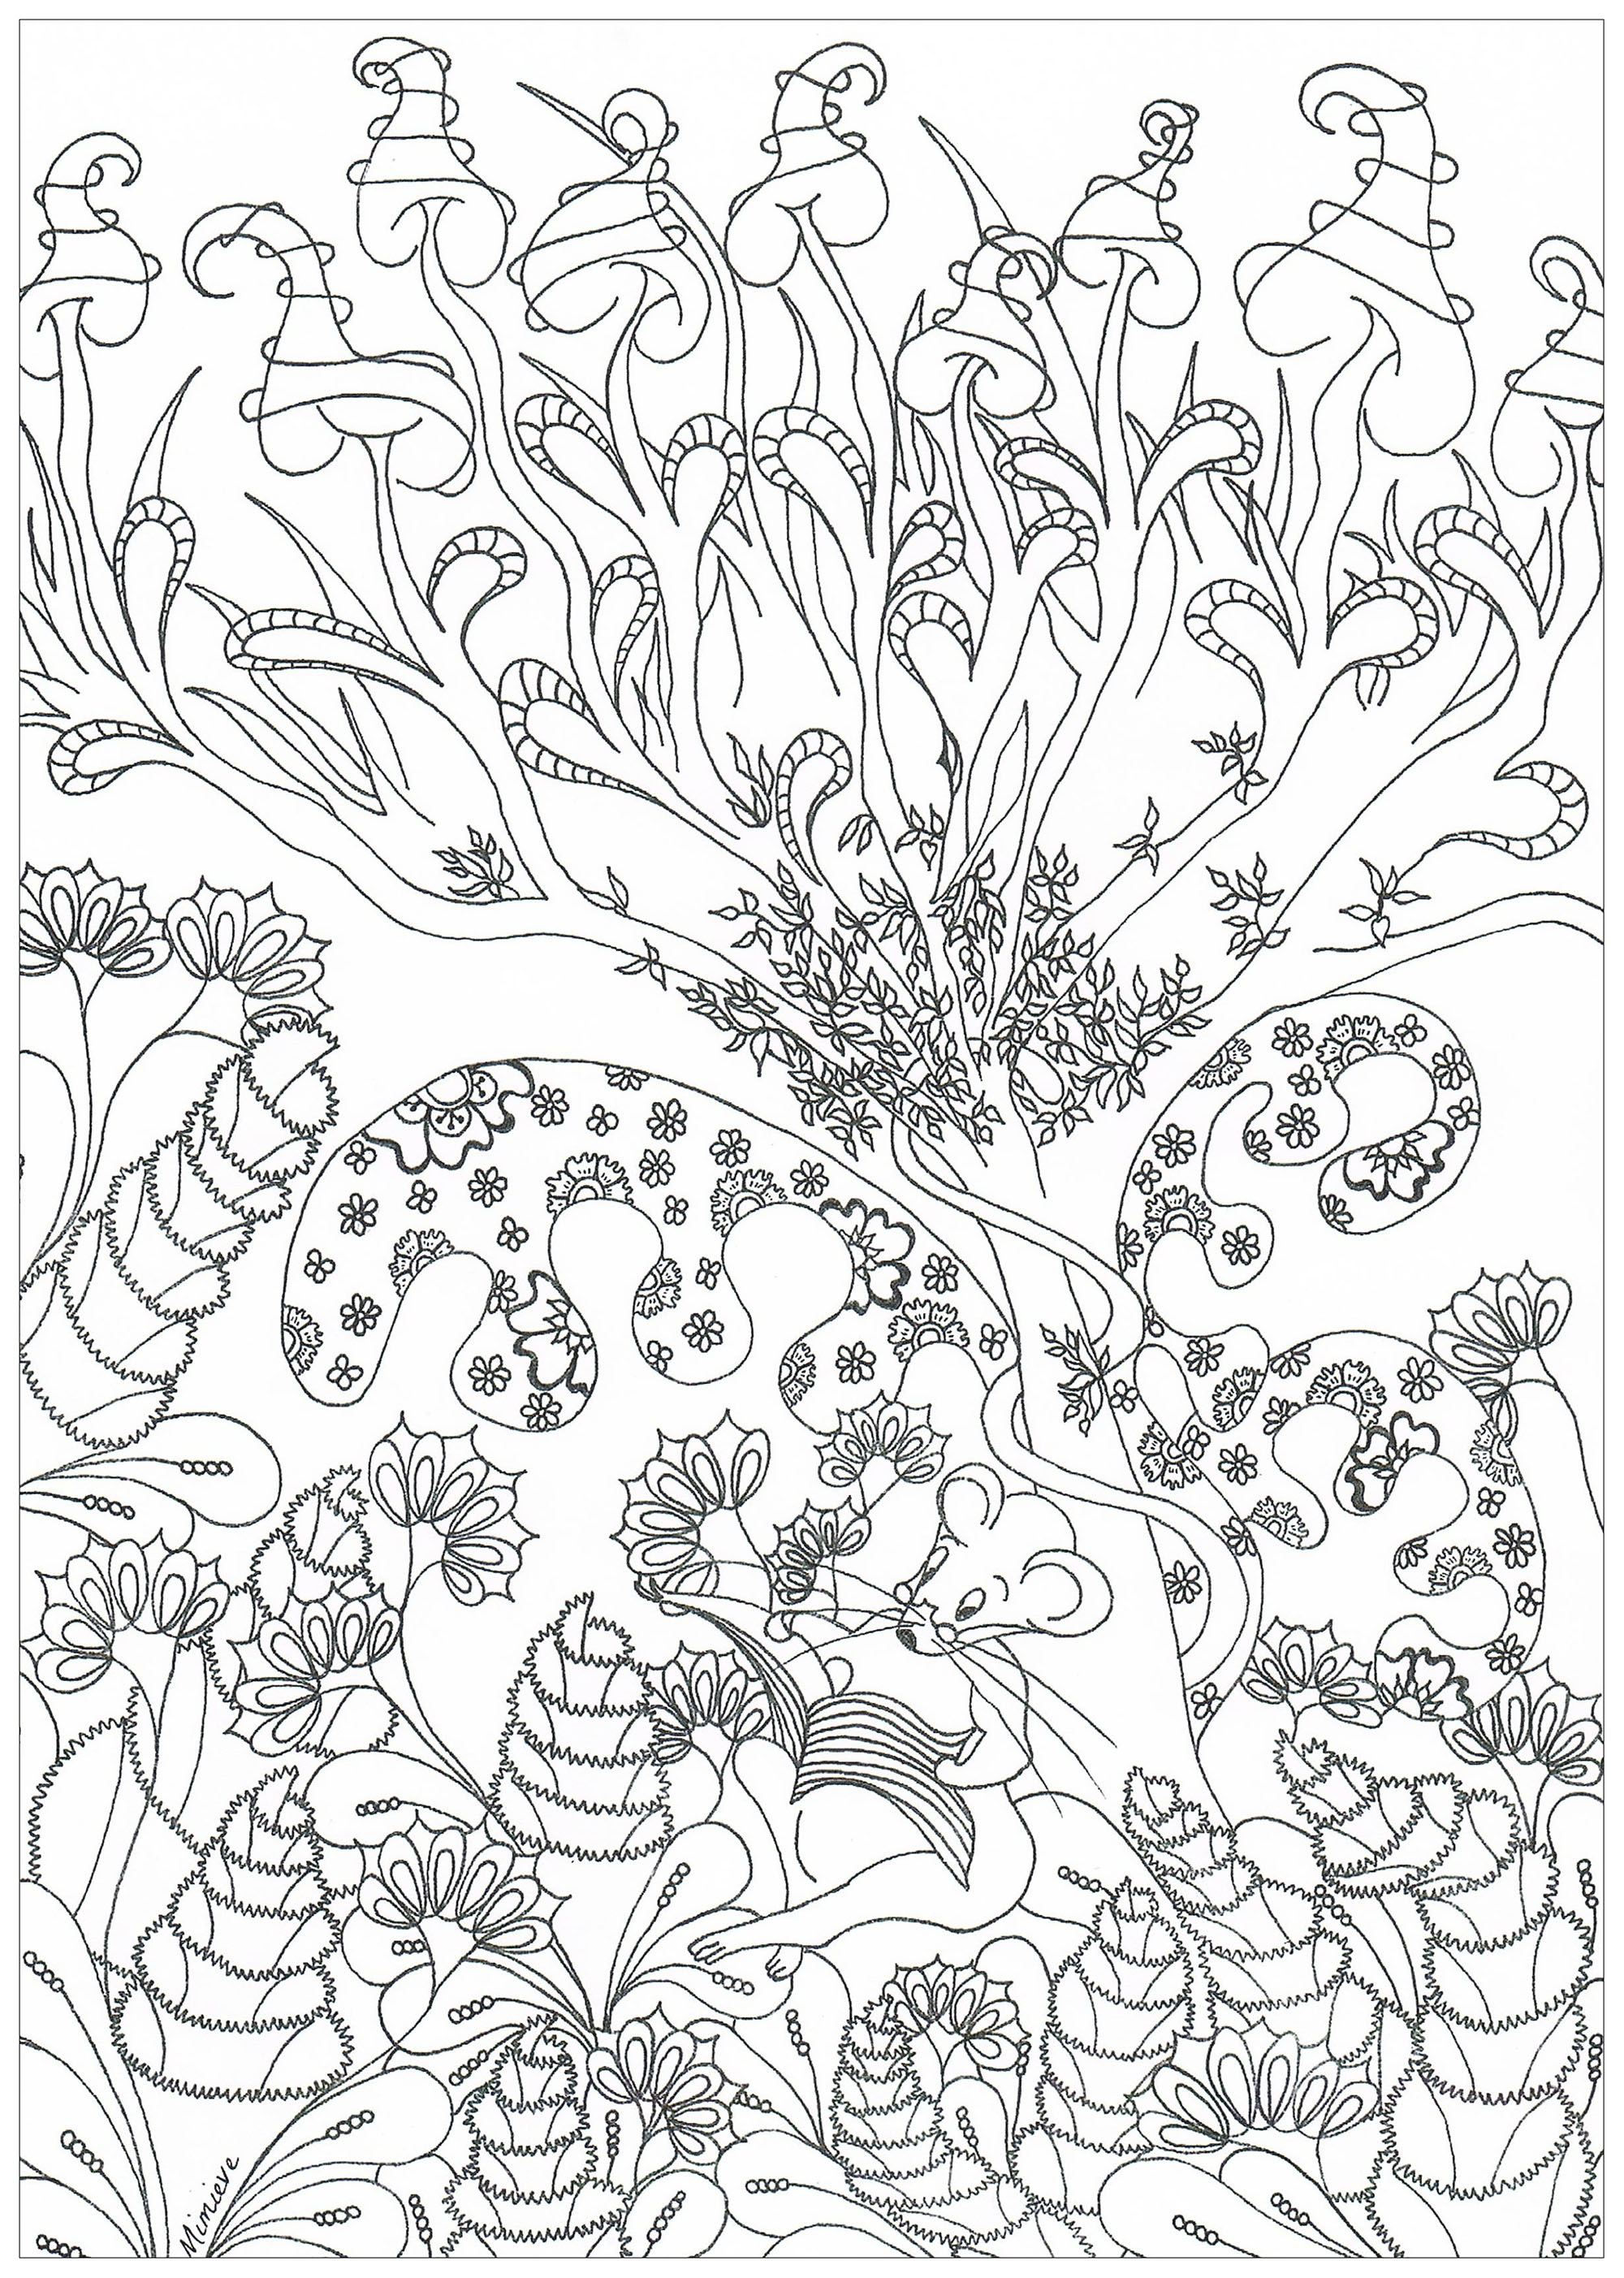 For t enchant e jungle et for t coloriages difficiles pour adultes - Dessin de foret ...